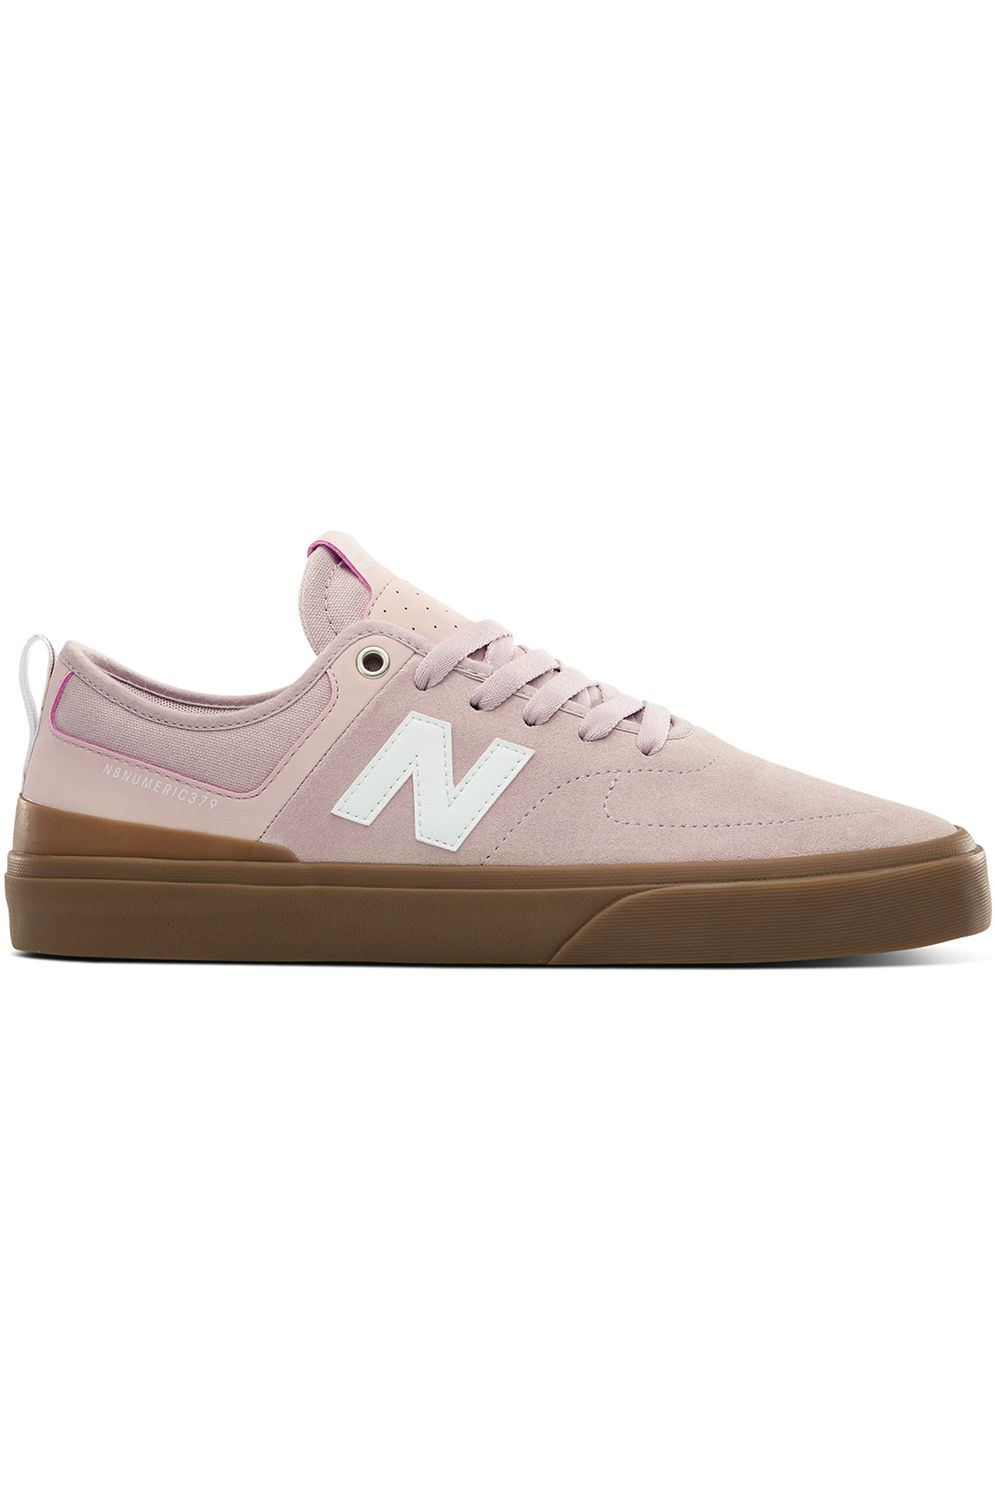 Tenis New Balance NB NUMERIC 379V1 Space Pink